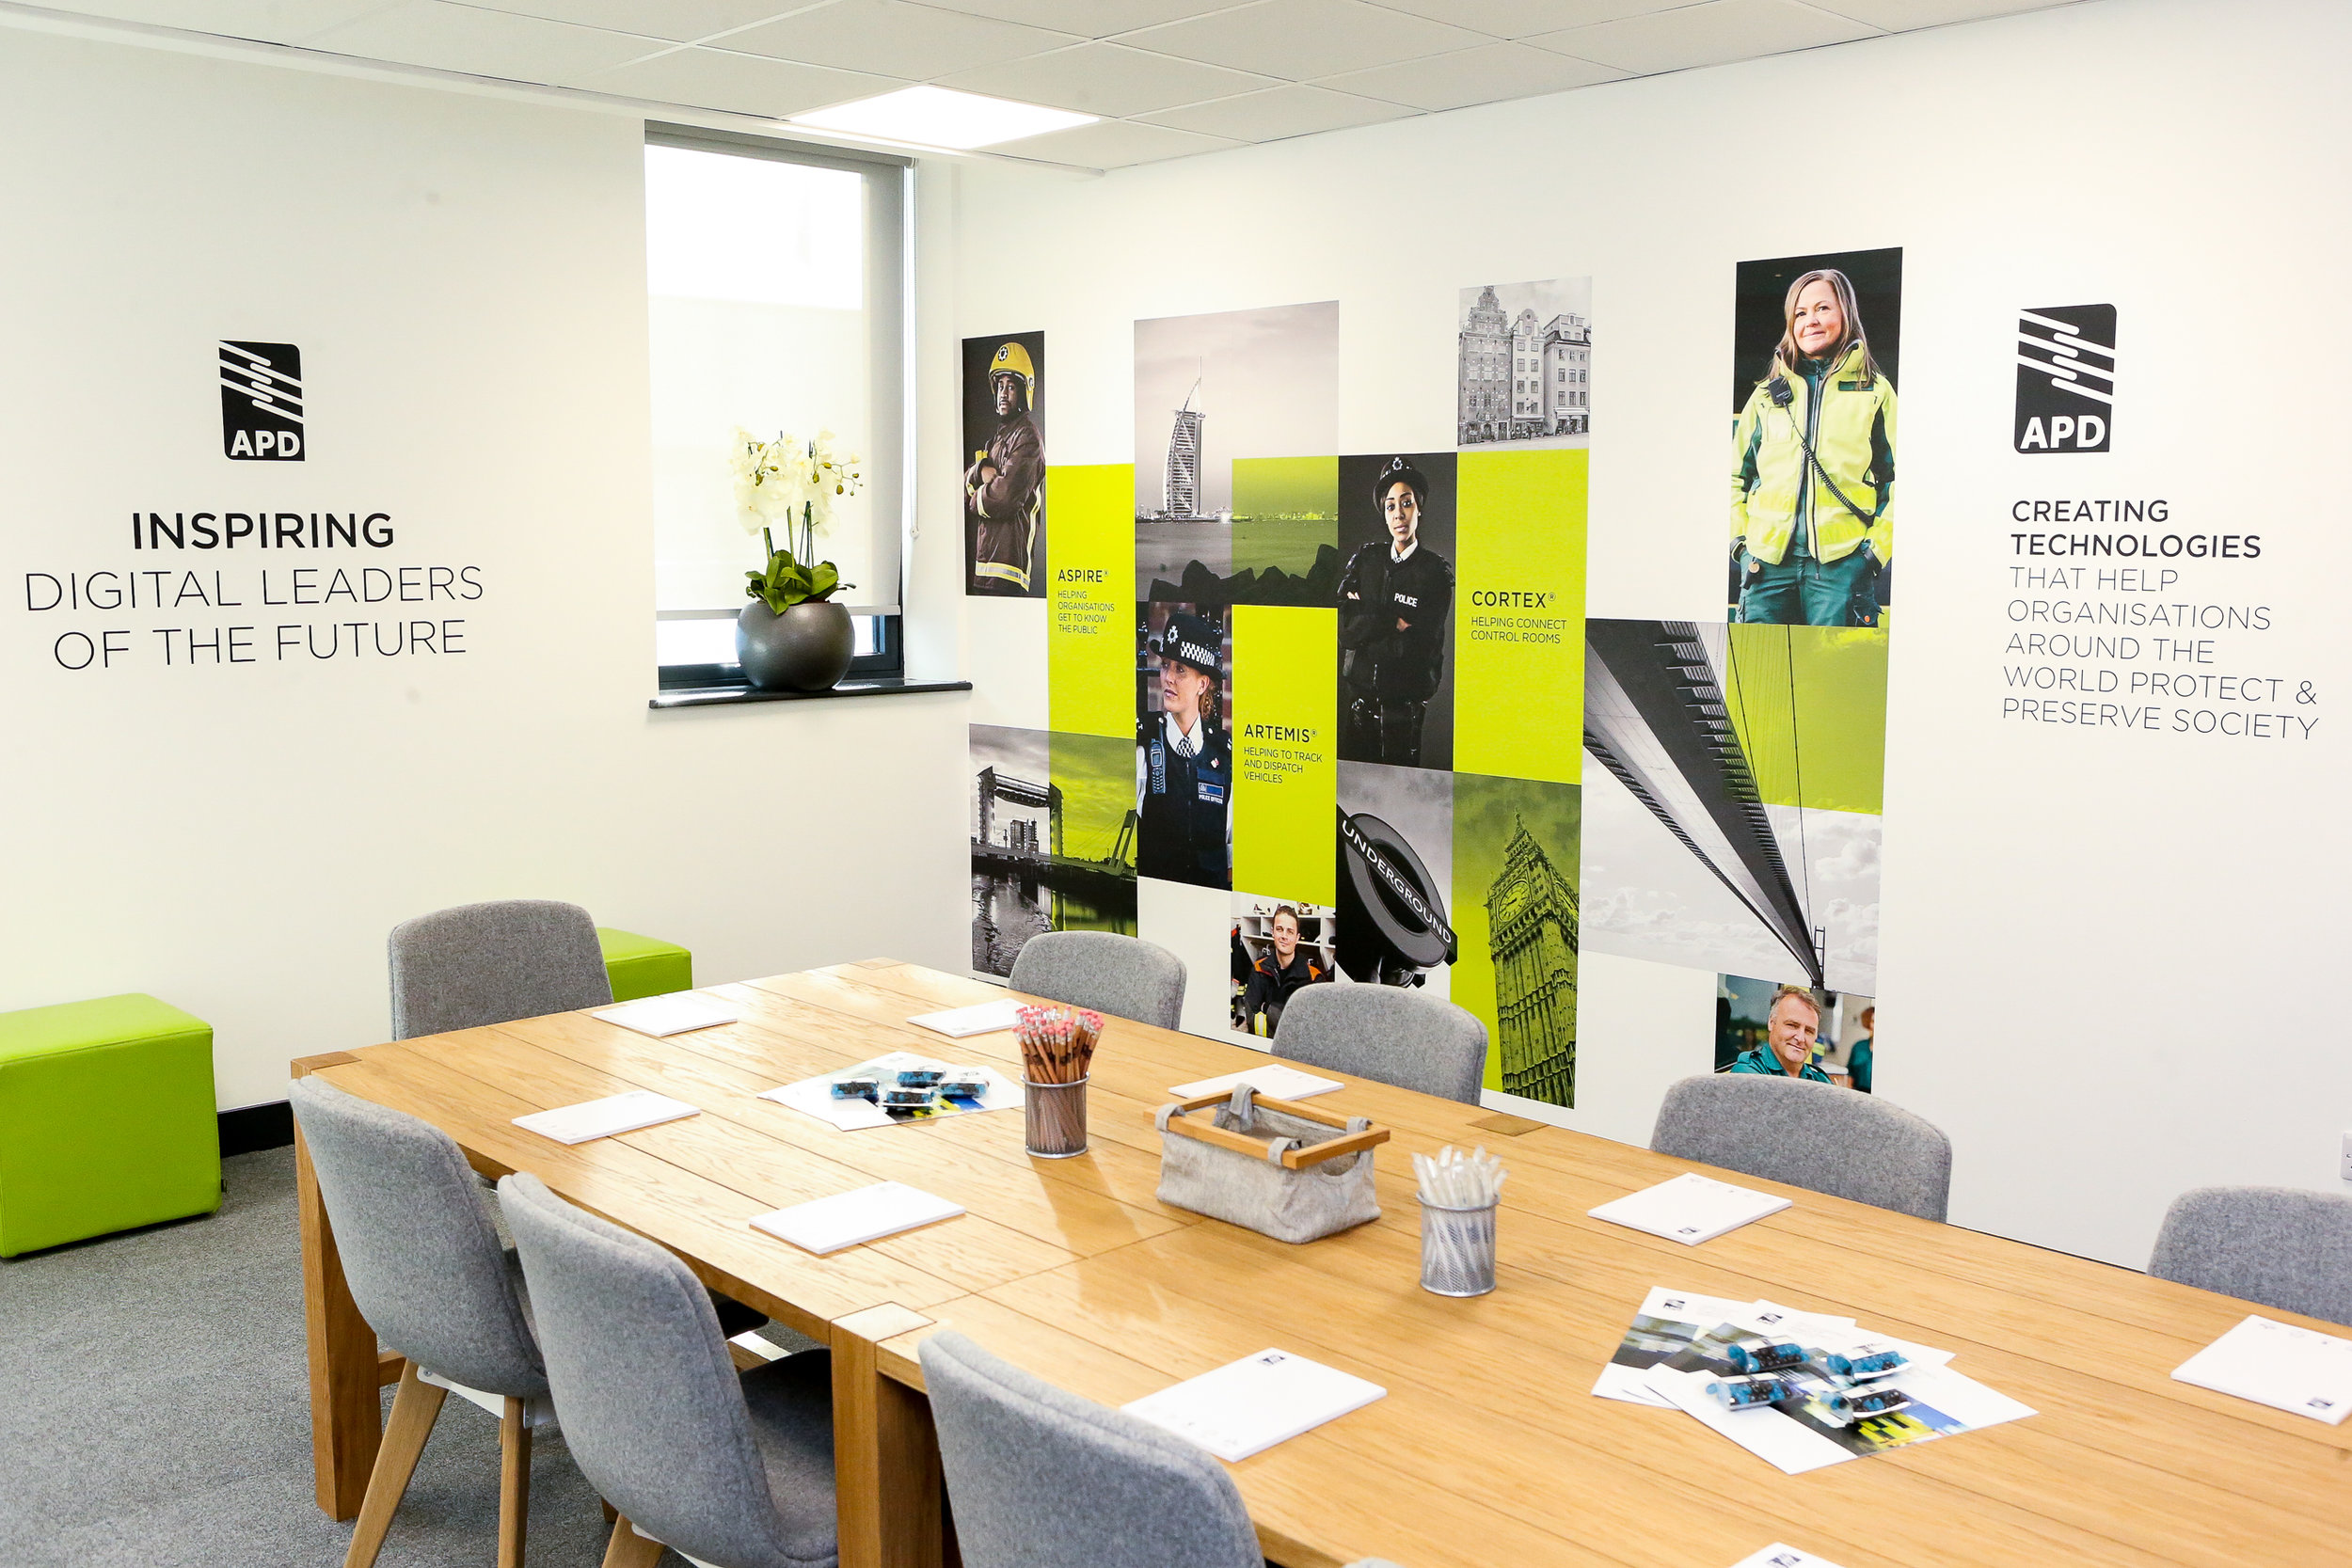 The APD Communications boardroom at ron Dearing UTC in hull